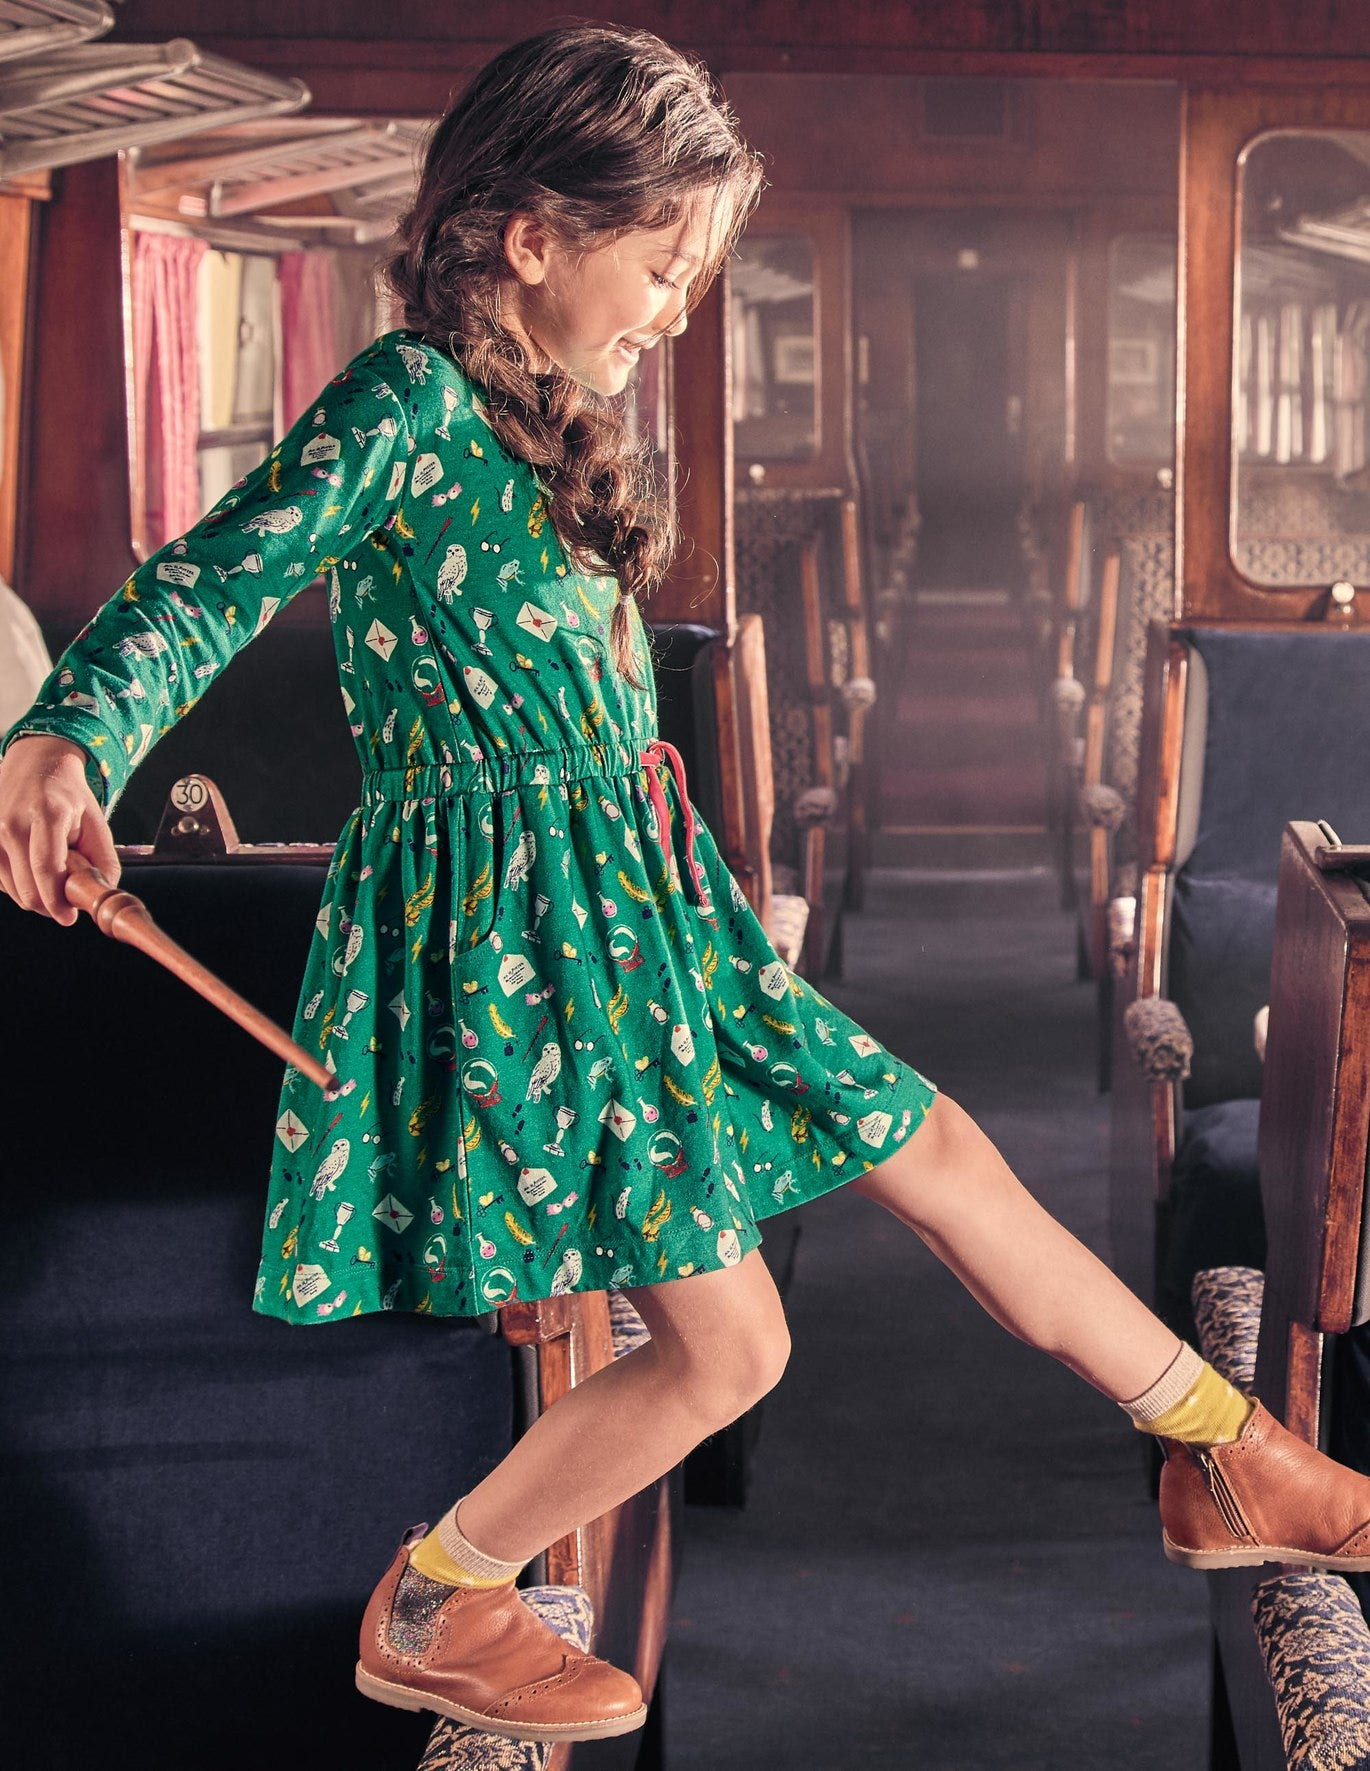 Hogwarts Printed Dress by Boden